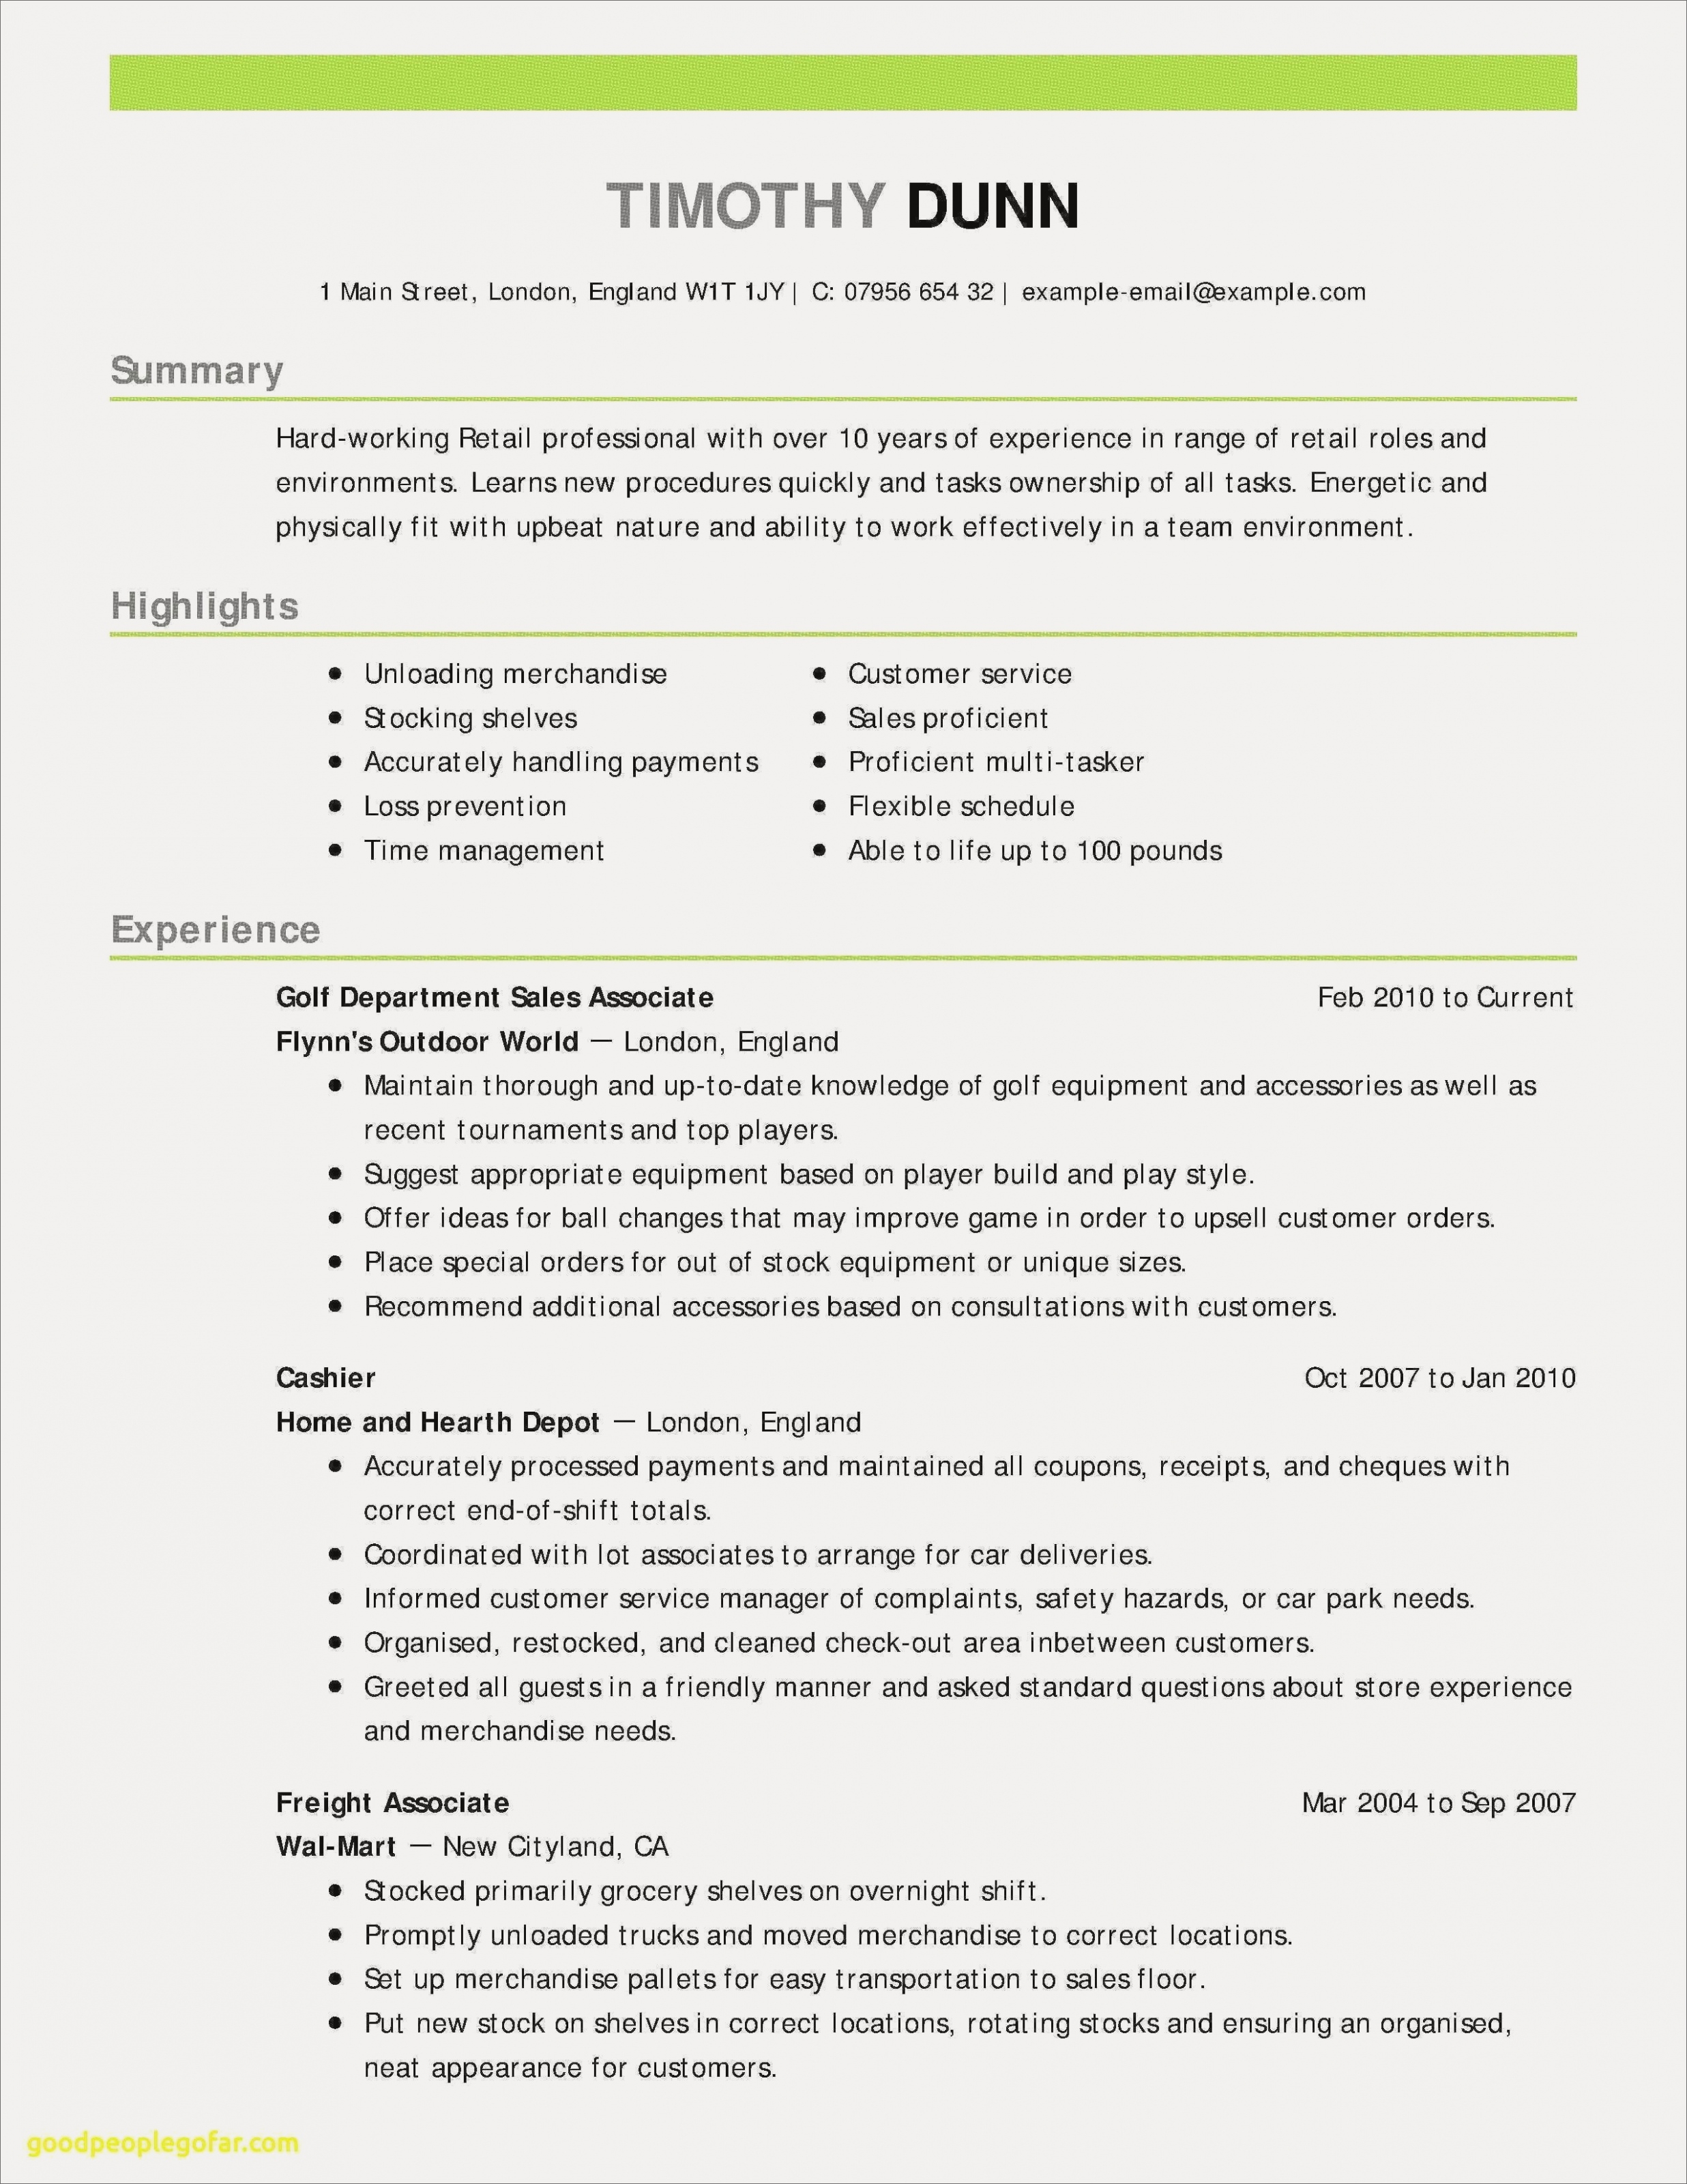 Help Writing Professional Resume - Professional Resume Template Doc Investor Letter Template Examples